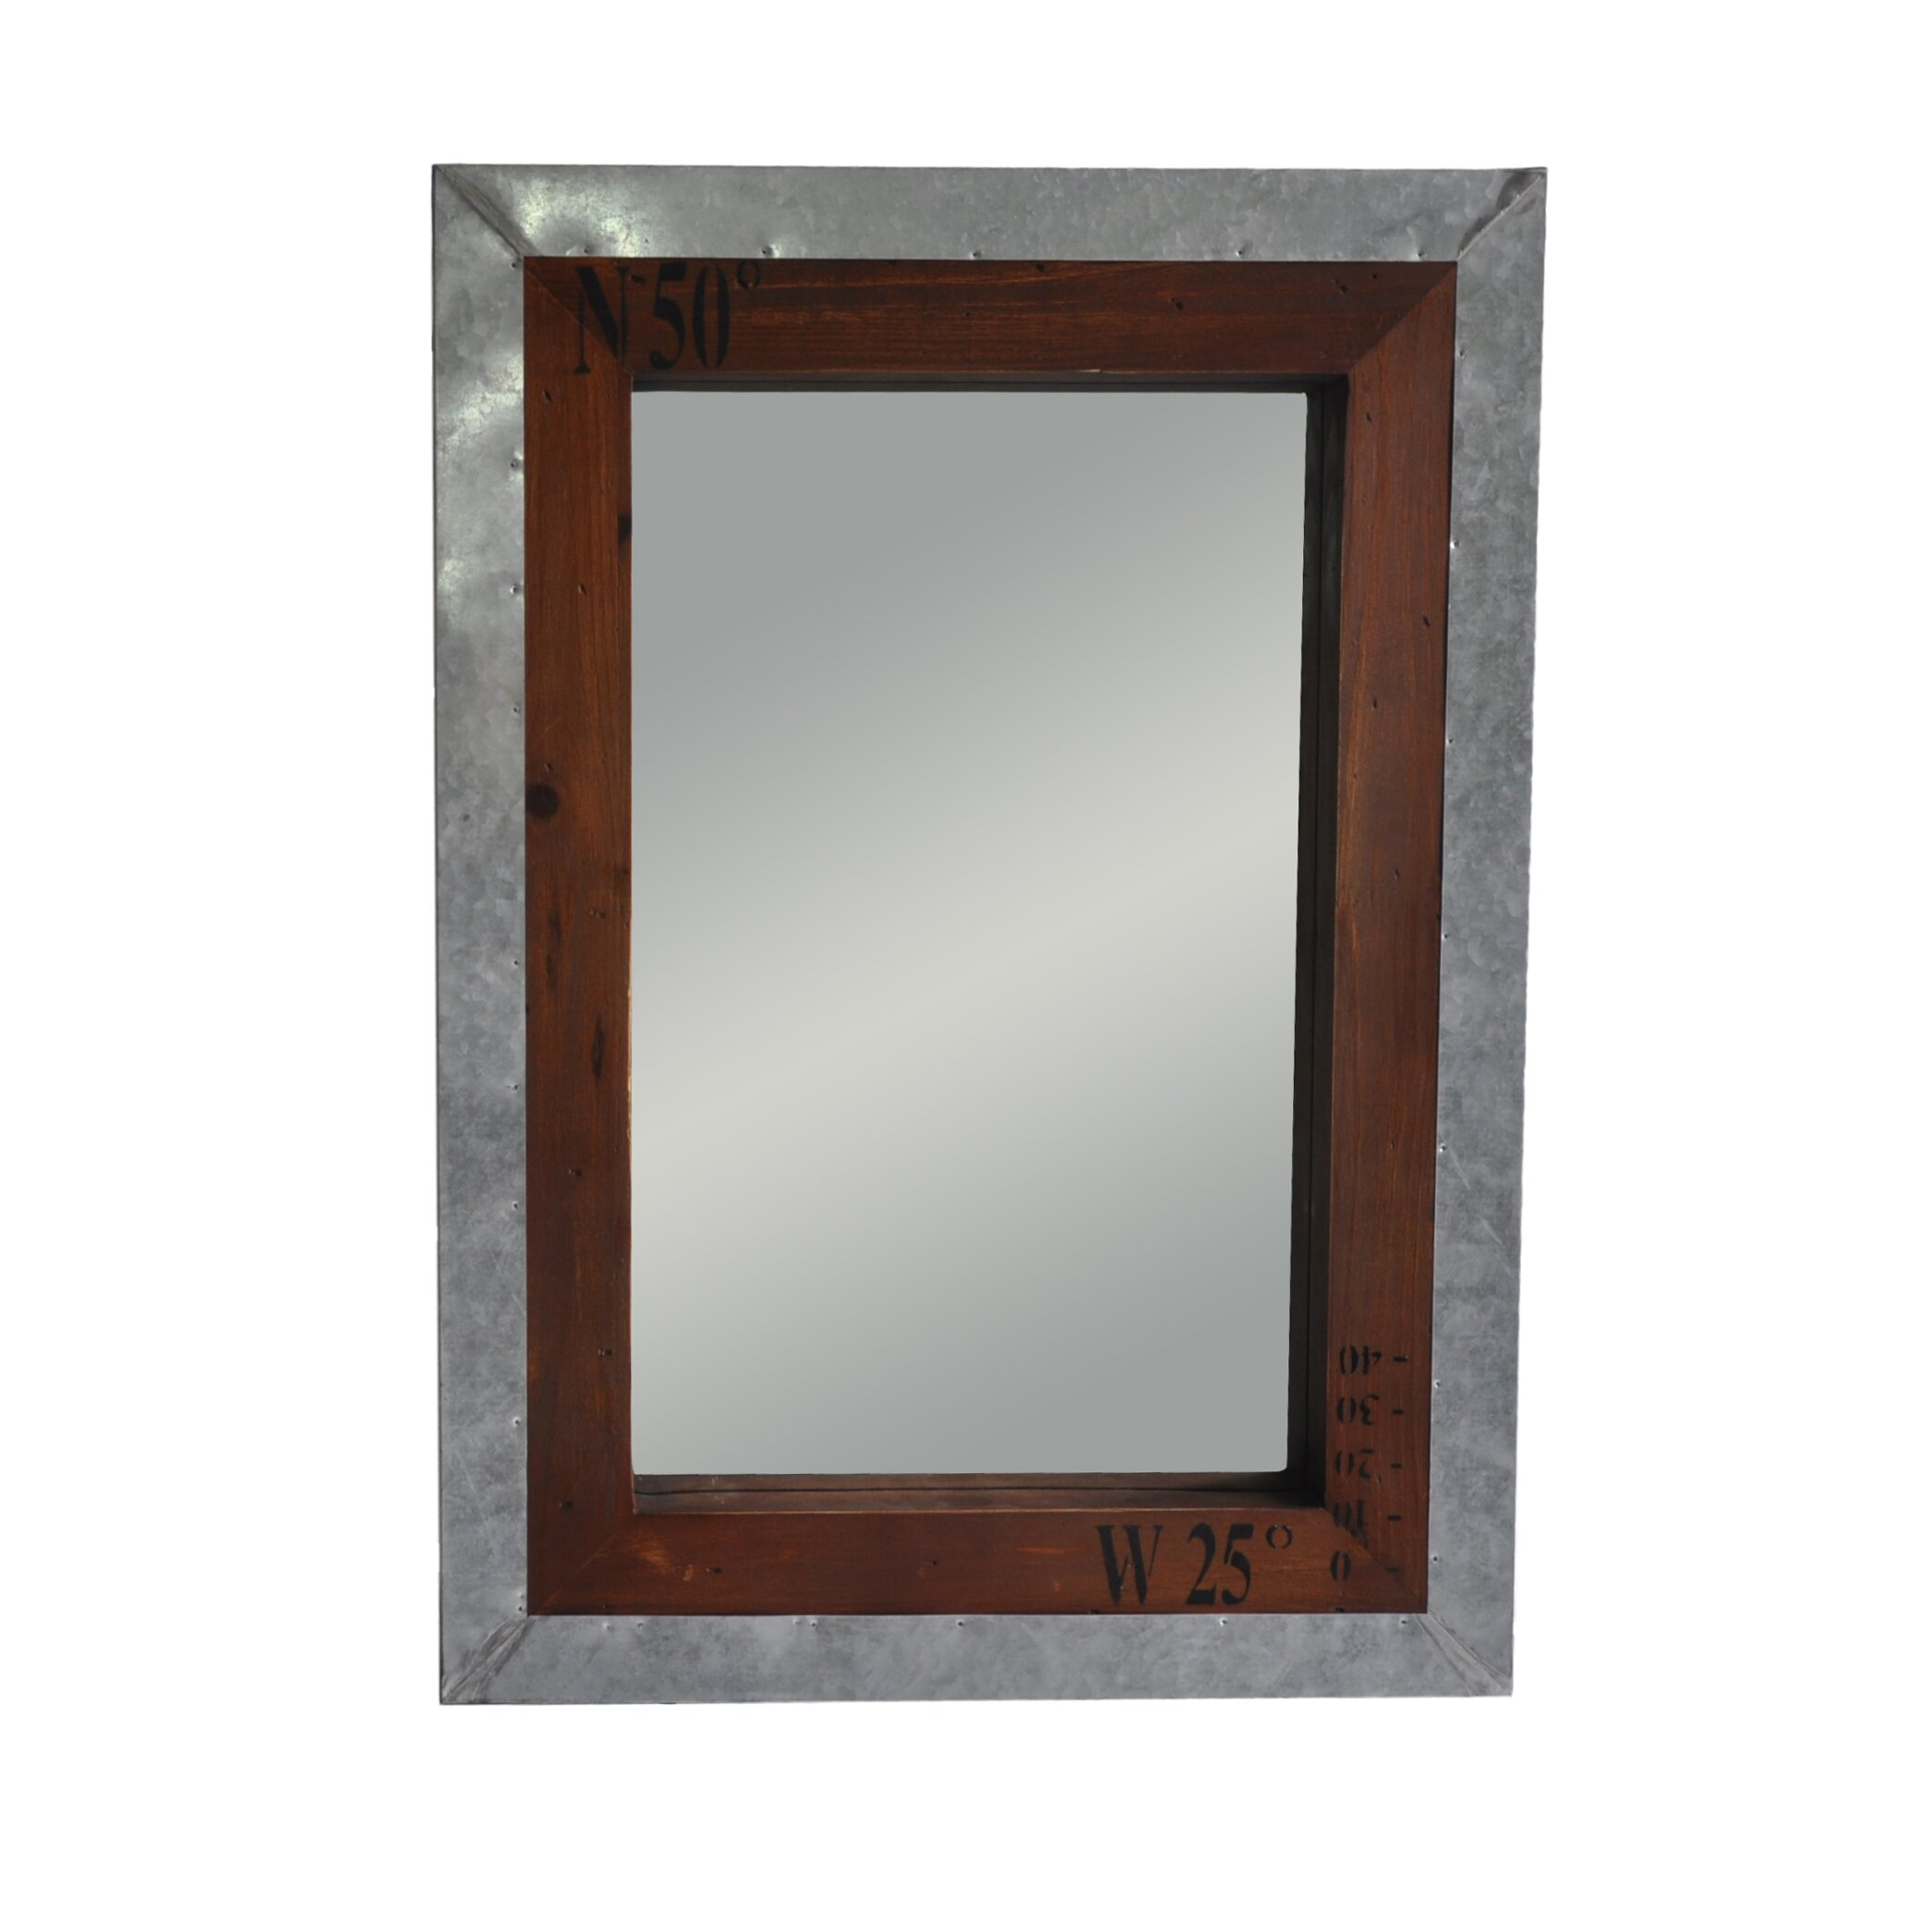 Cheungs wall mirror with metal and wood frame reviews for Metal frame mirror